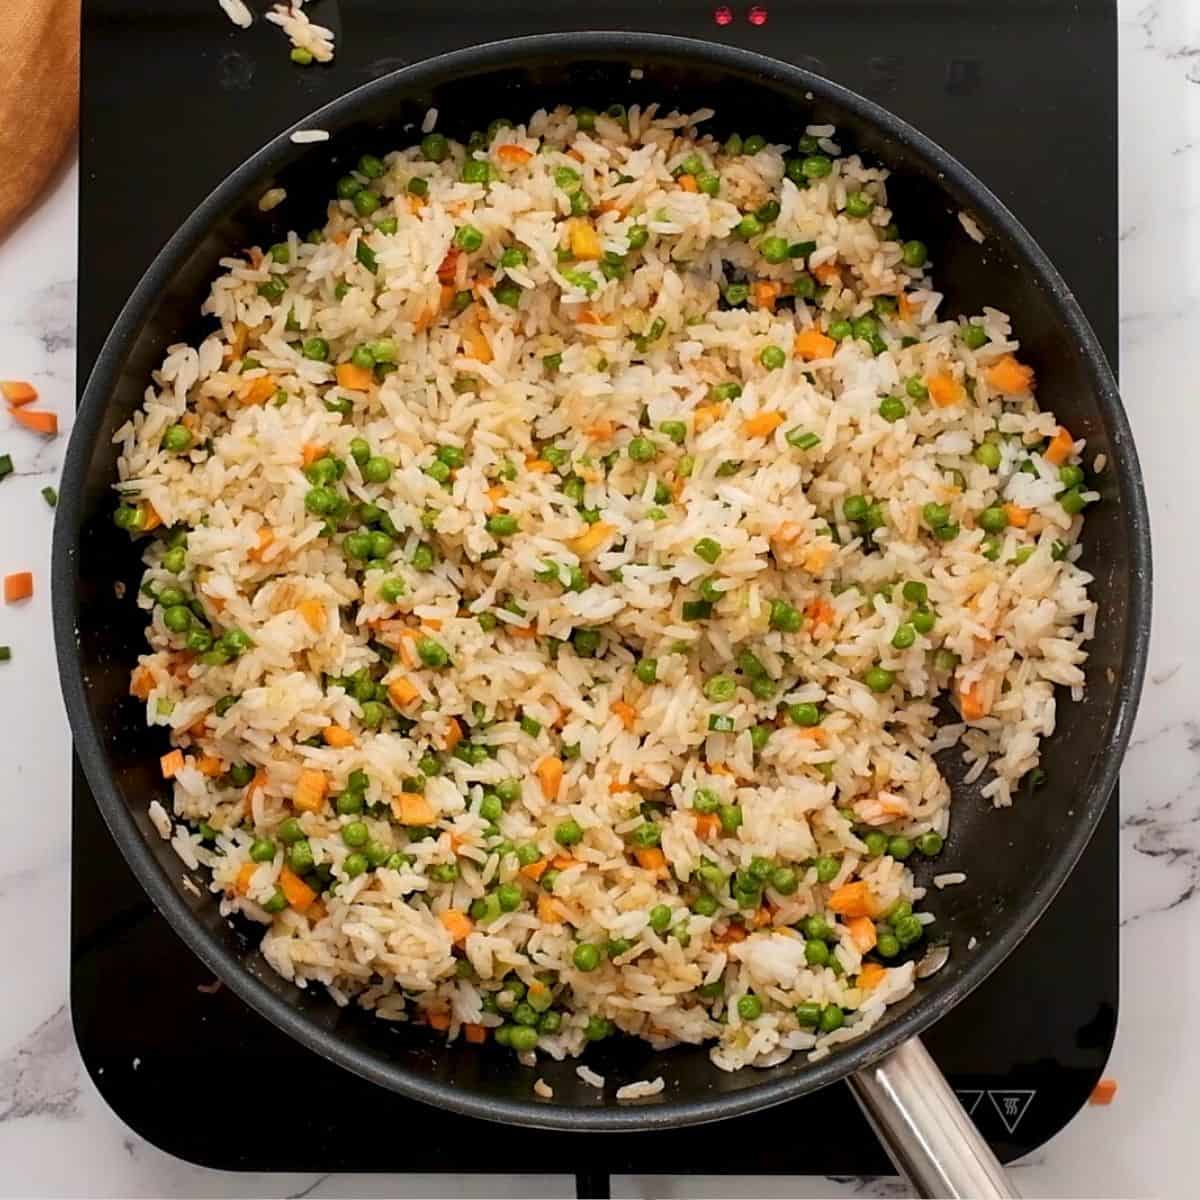 Rice with carrots and peas in large skillet.